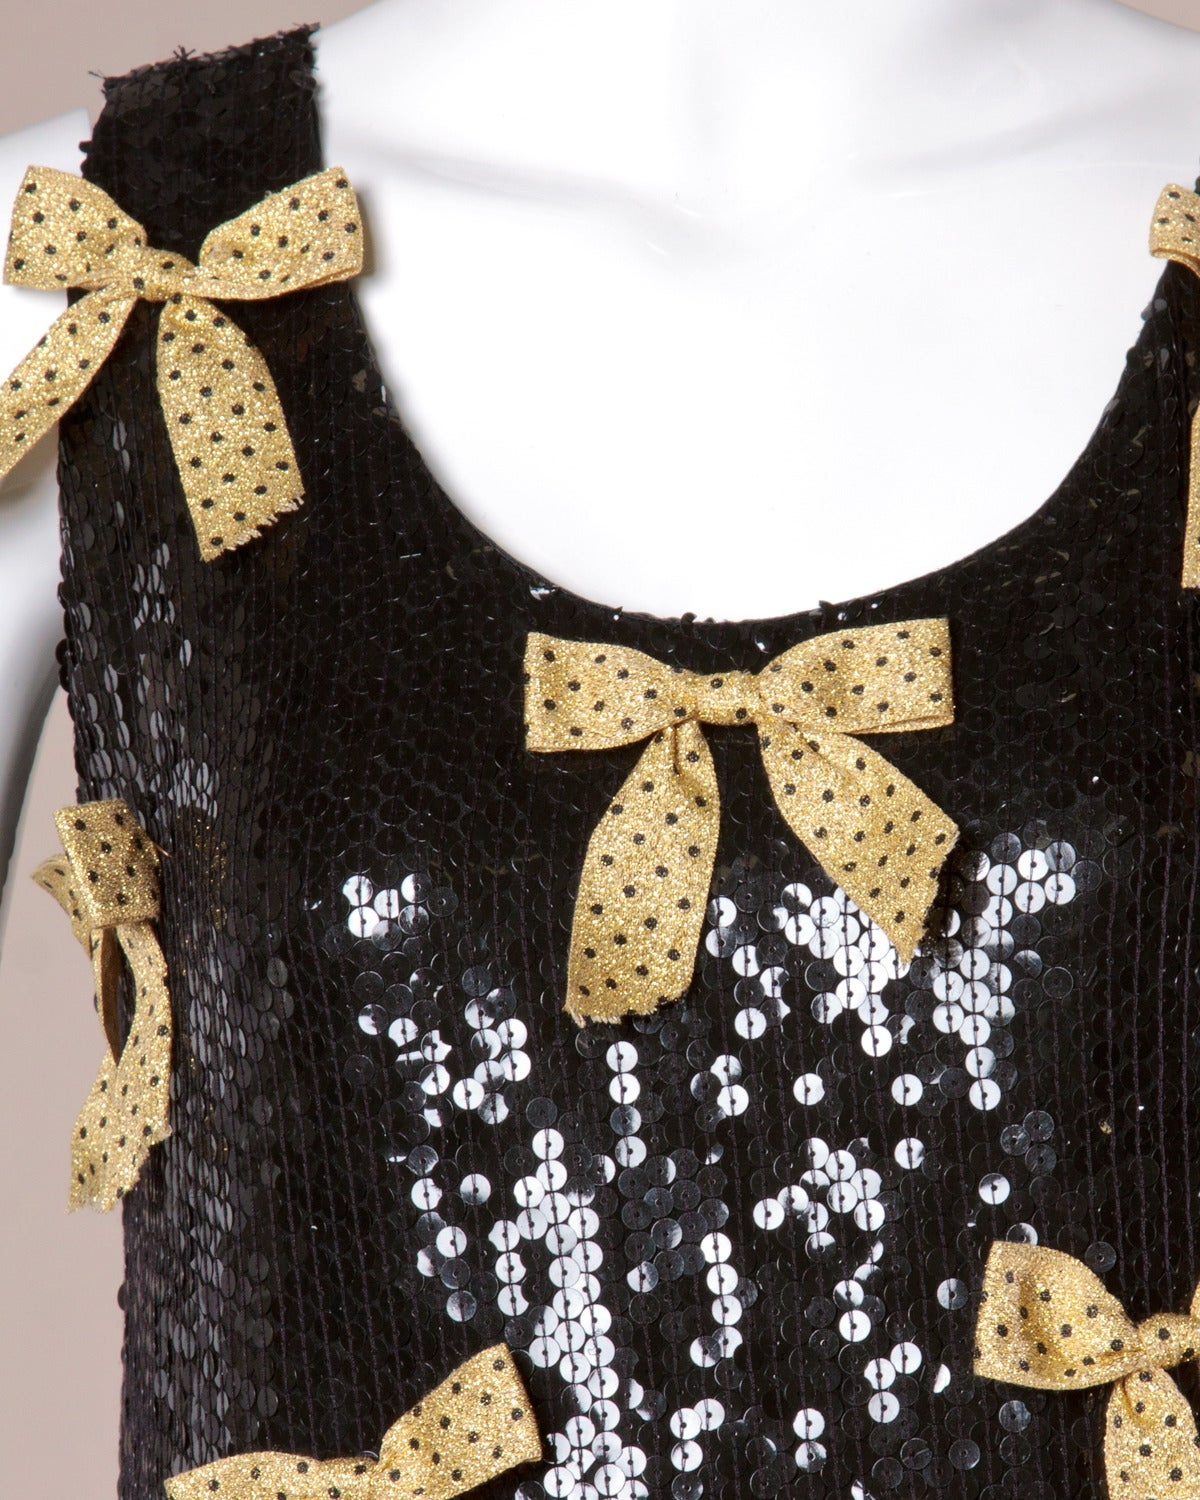 Jeanette Kastenberg for St. Martin vintage black sequin shift dress with metallic gold bow appliques on the front of the dress.   Details:  Fully Lined Side Zip and Hook Closure Marked Size: M Estimated Size: S-M Label: Jeanette for St.